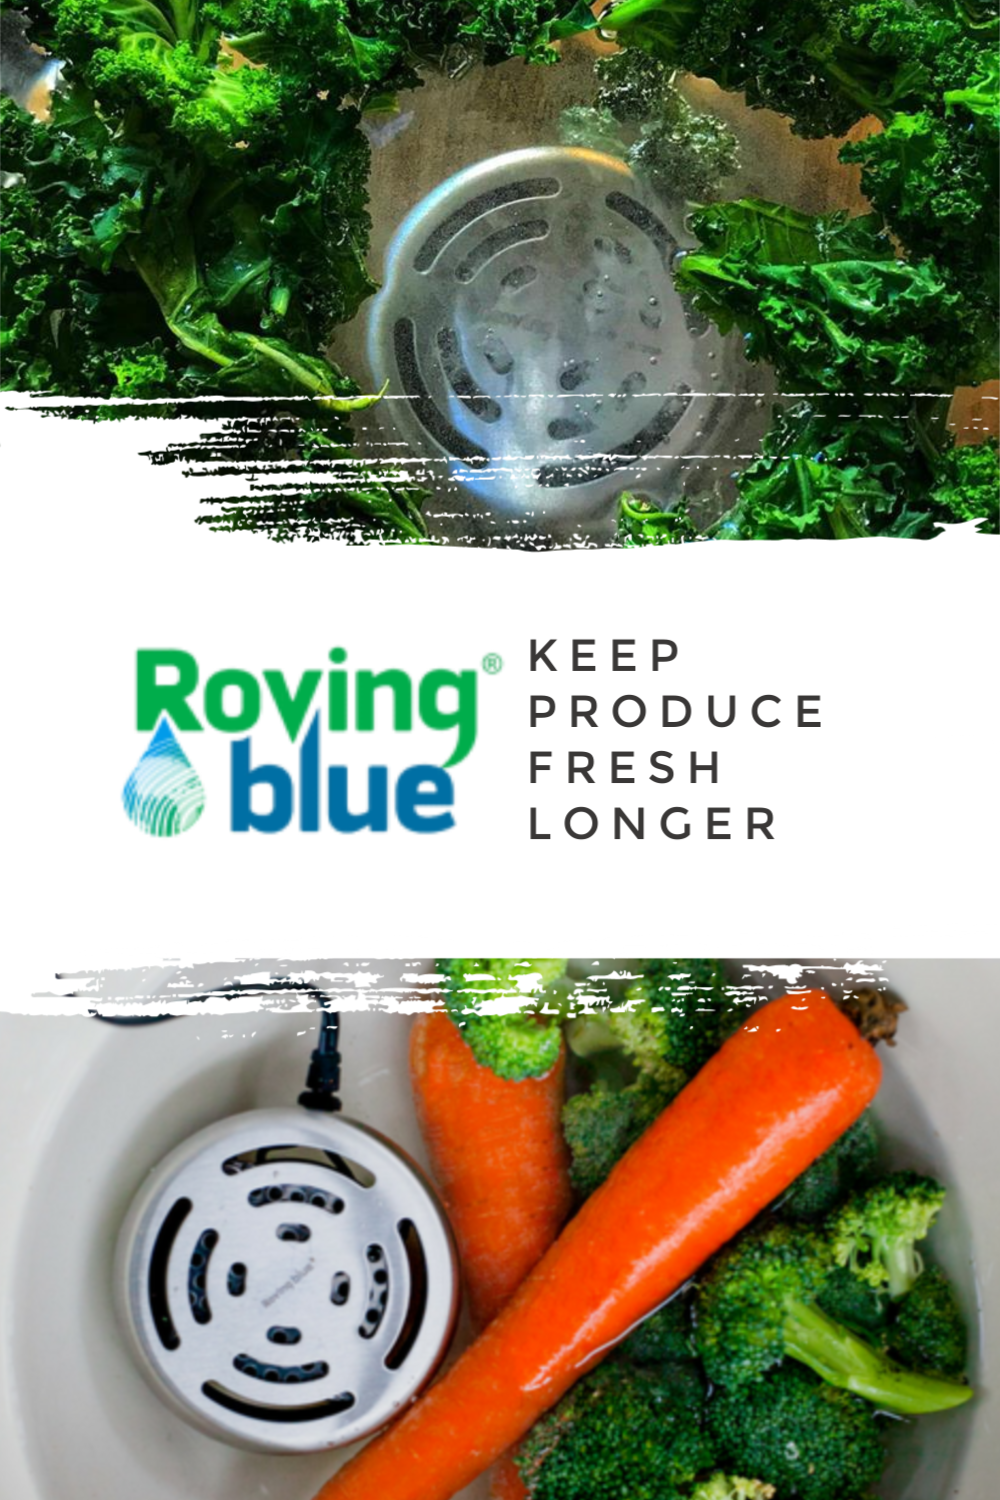 Roving Blue Keep Produce Fresh Longer #Ozone #RovingBlue